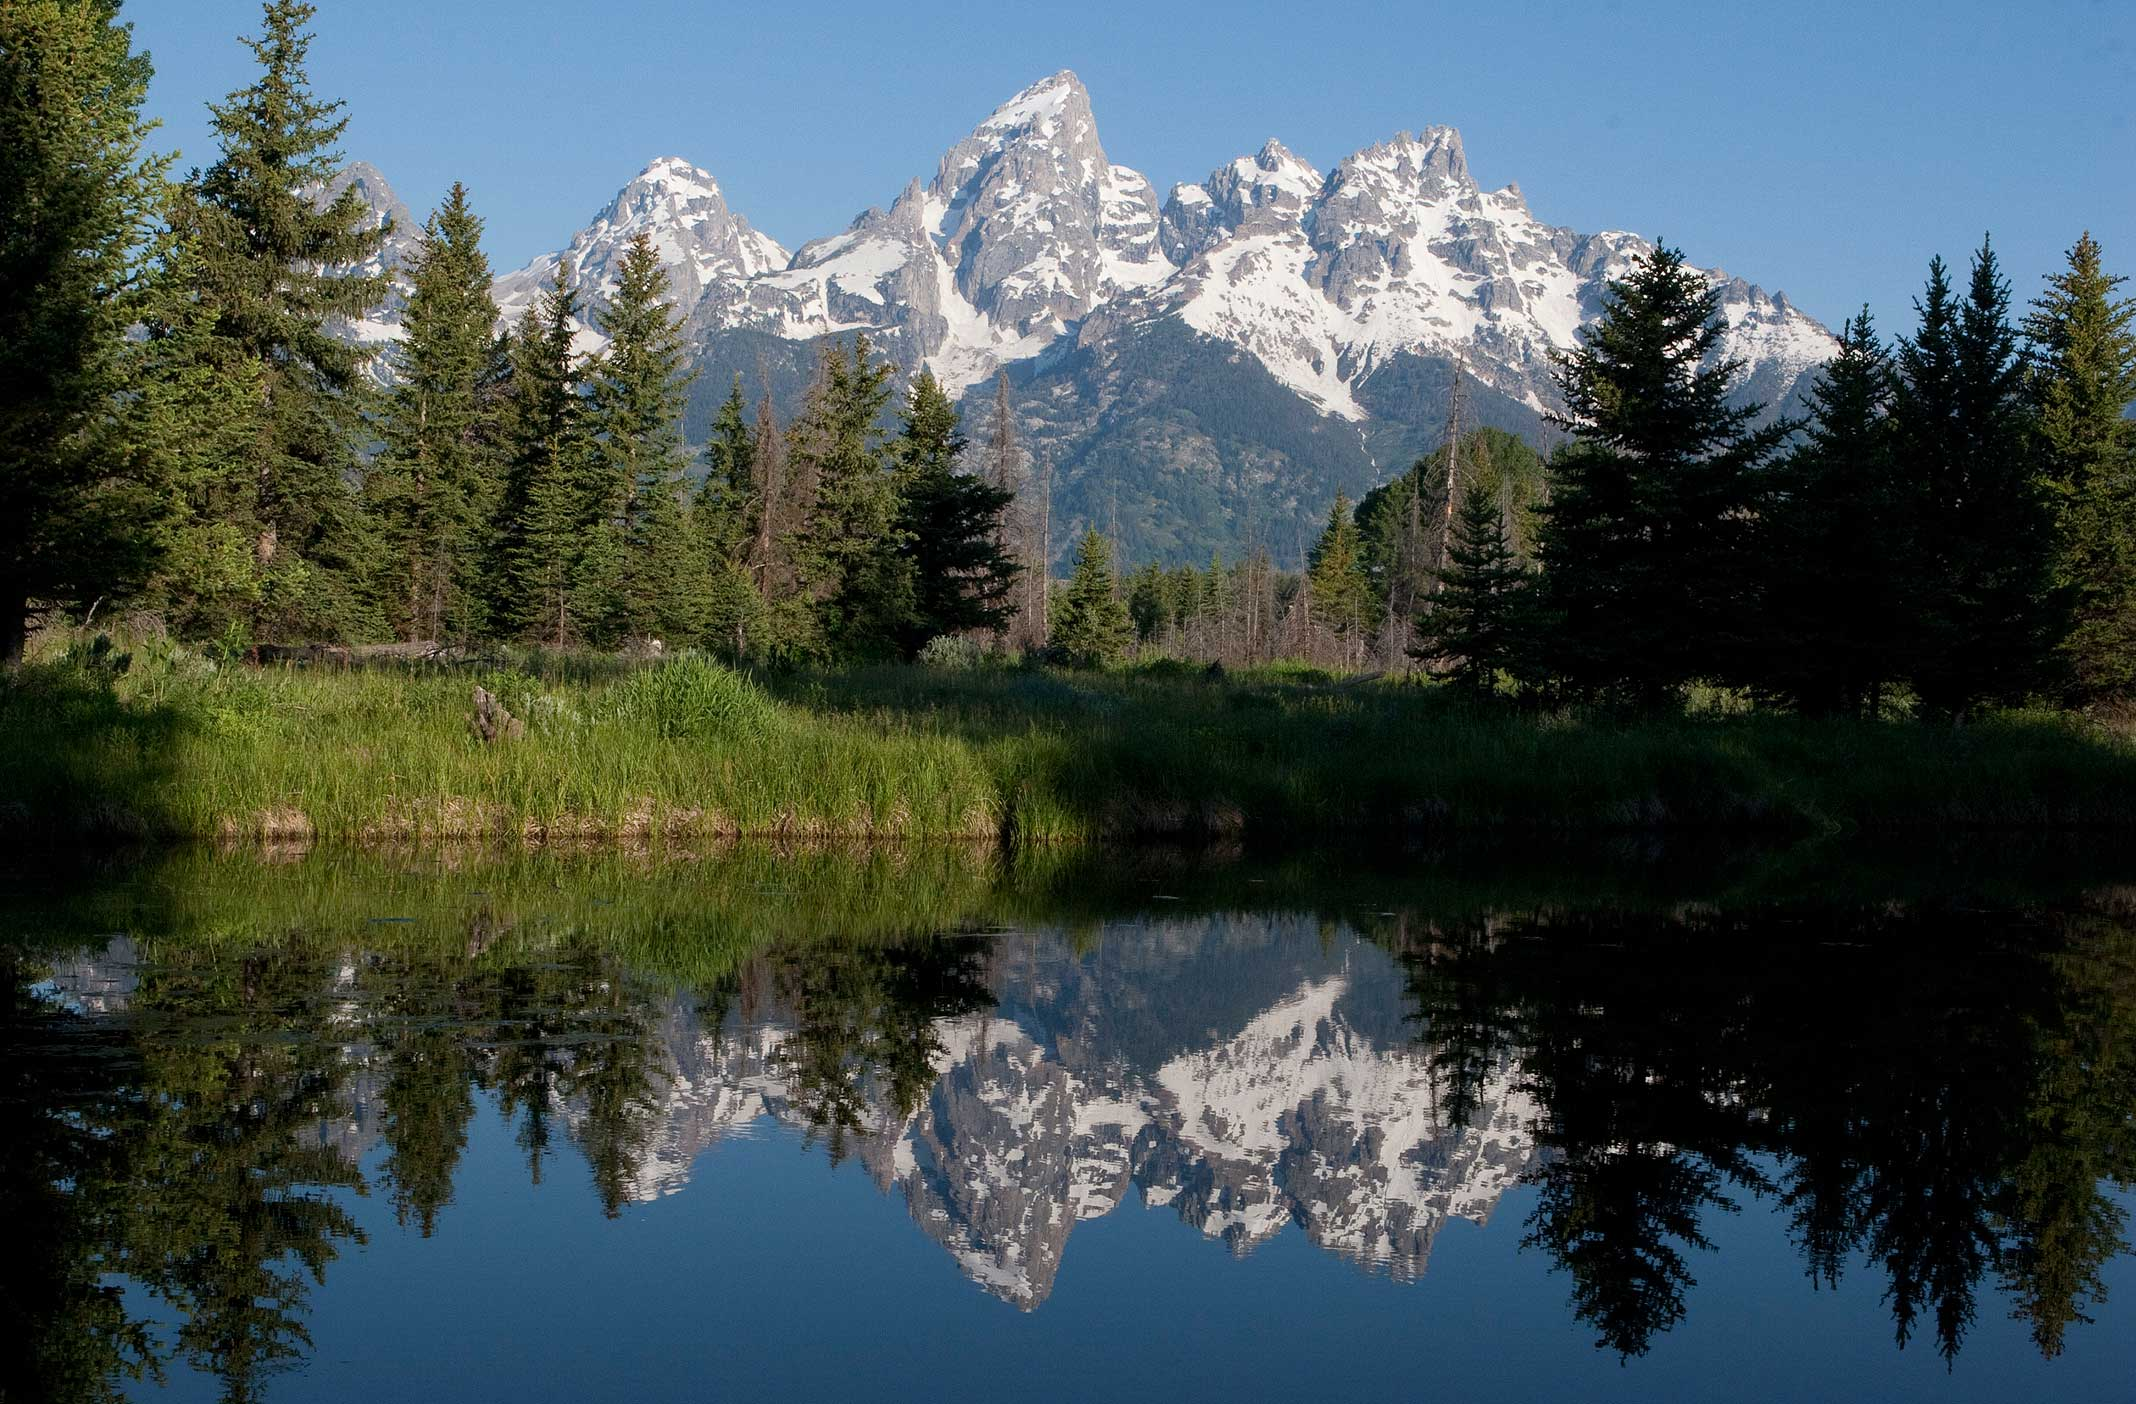 Pristine lake near Jackson Hole, Wyoming with pine trees and mountains reflected